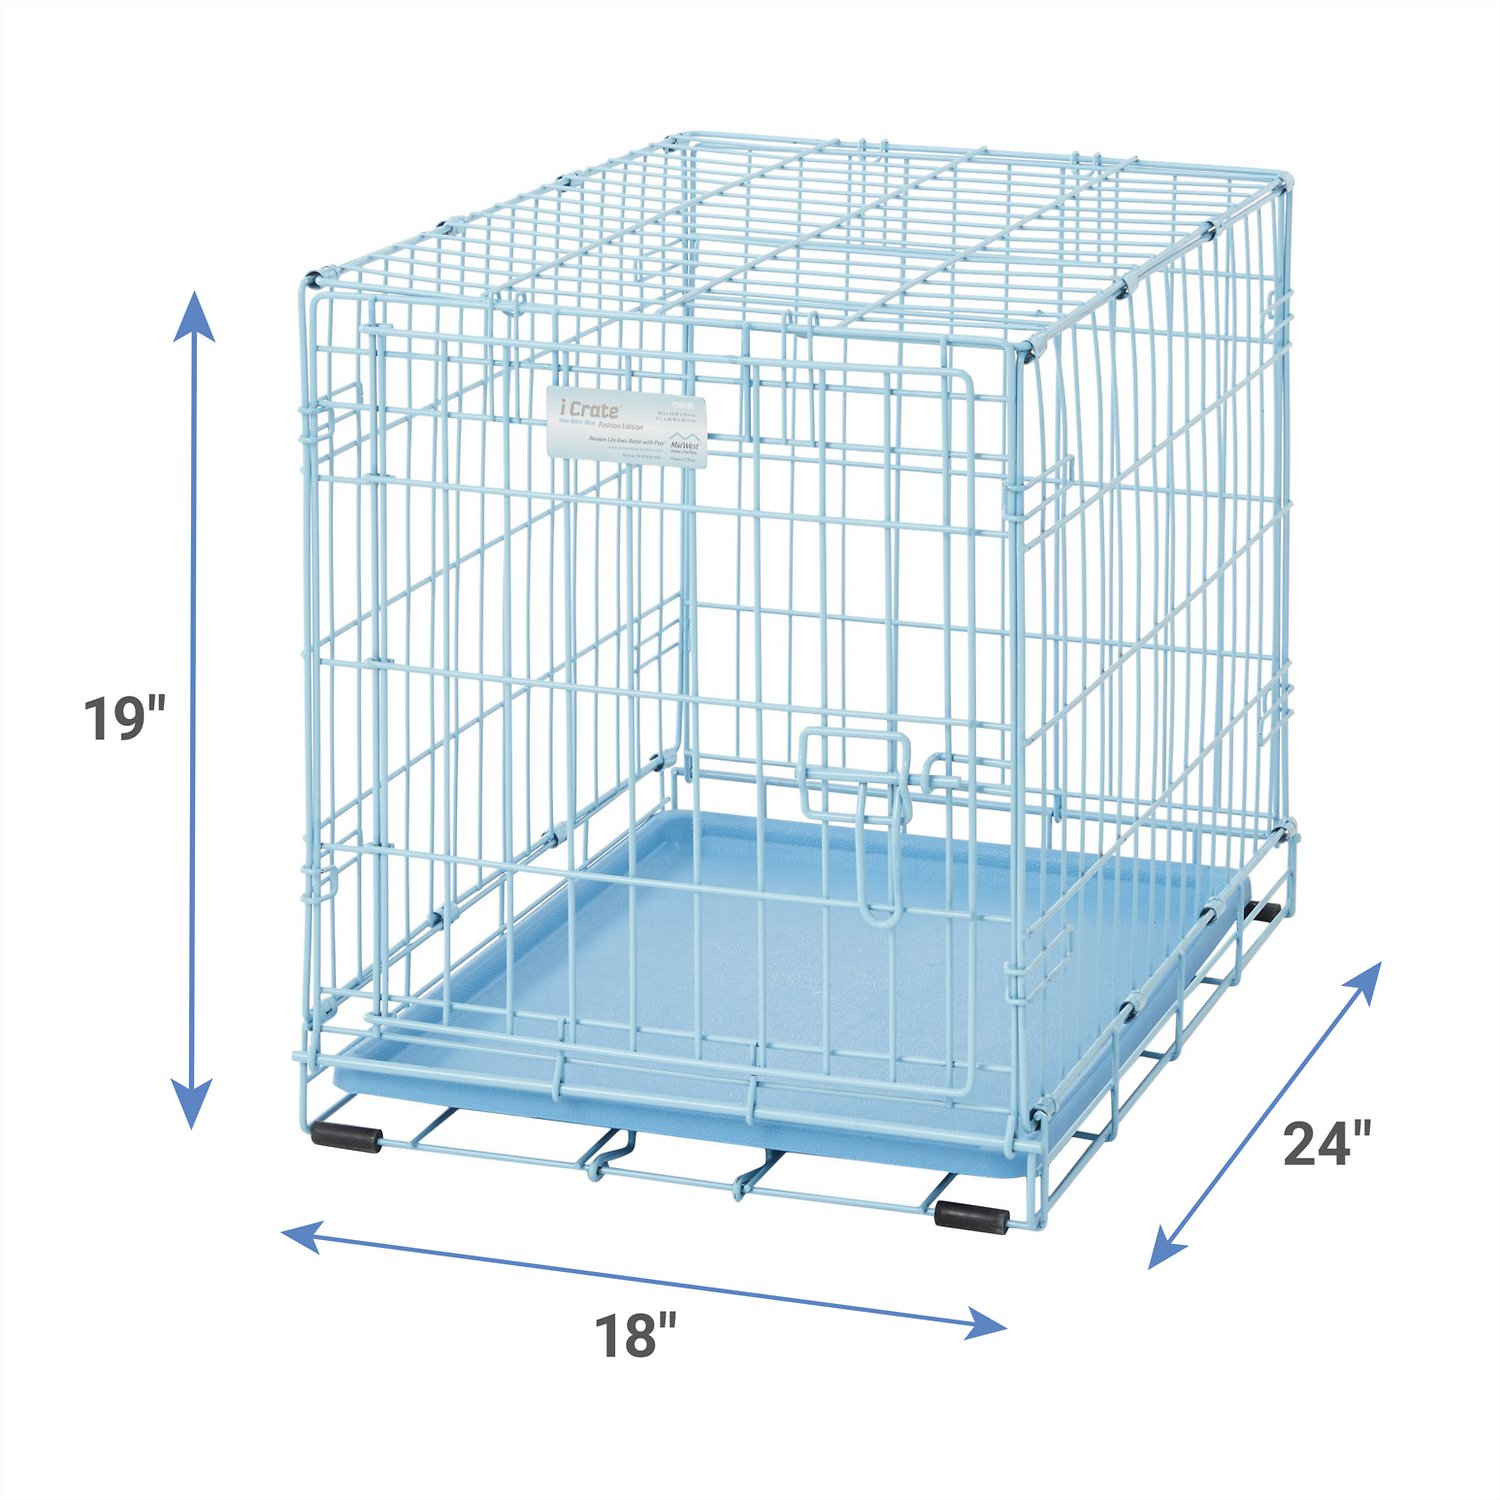 midwest icrate single door dog crate blue in  chewycom - midwest icrate single door dog crate blue